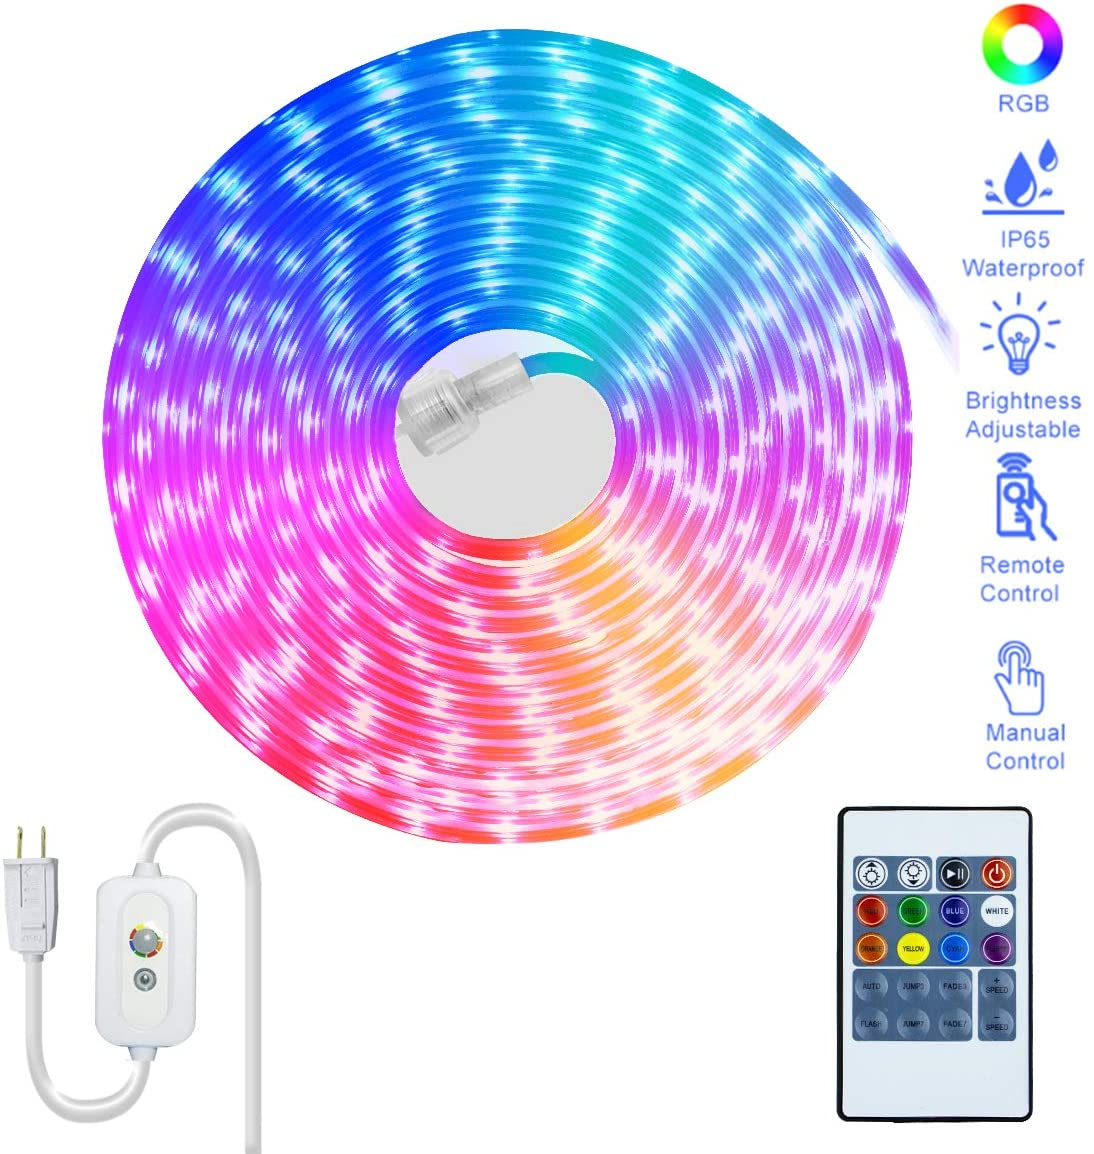 Flat Flexible LED Rope Lights,50 Feet Color Changing RGB Strip Light with Remote Control,Manual Control Direct Plug in Novelty Lighting, Connectable and Waterproof for Decoration Lighting